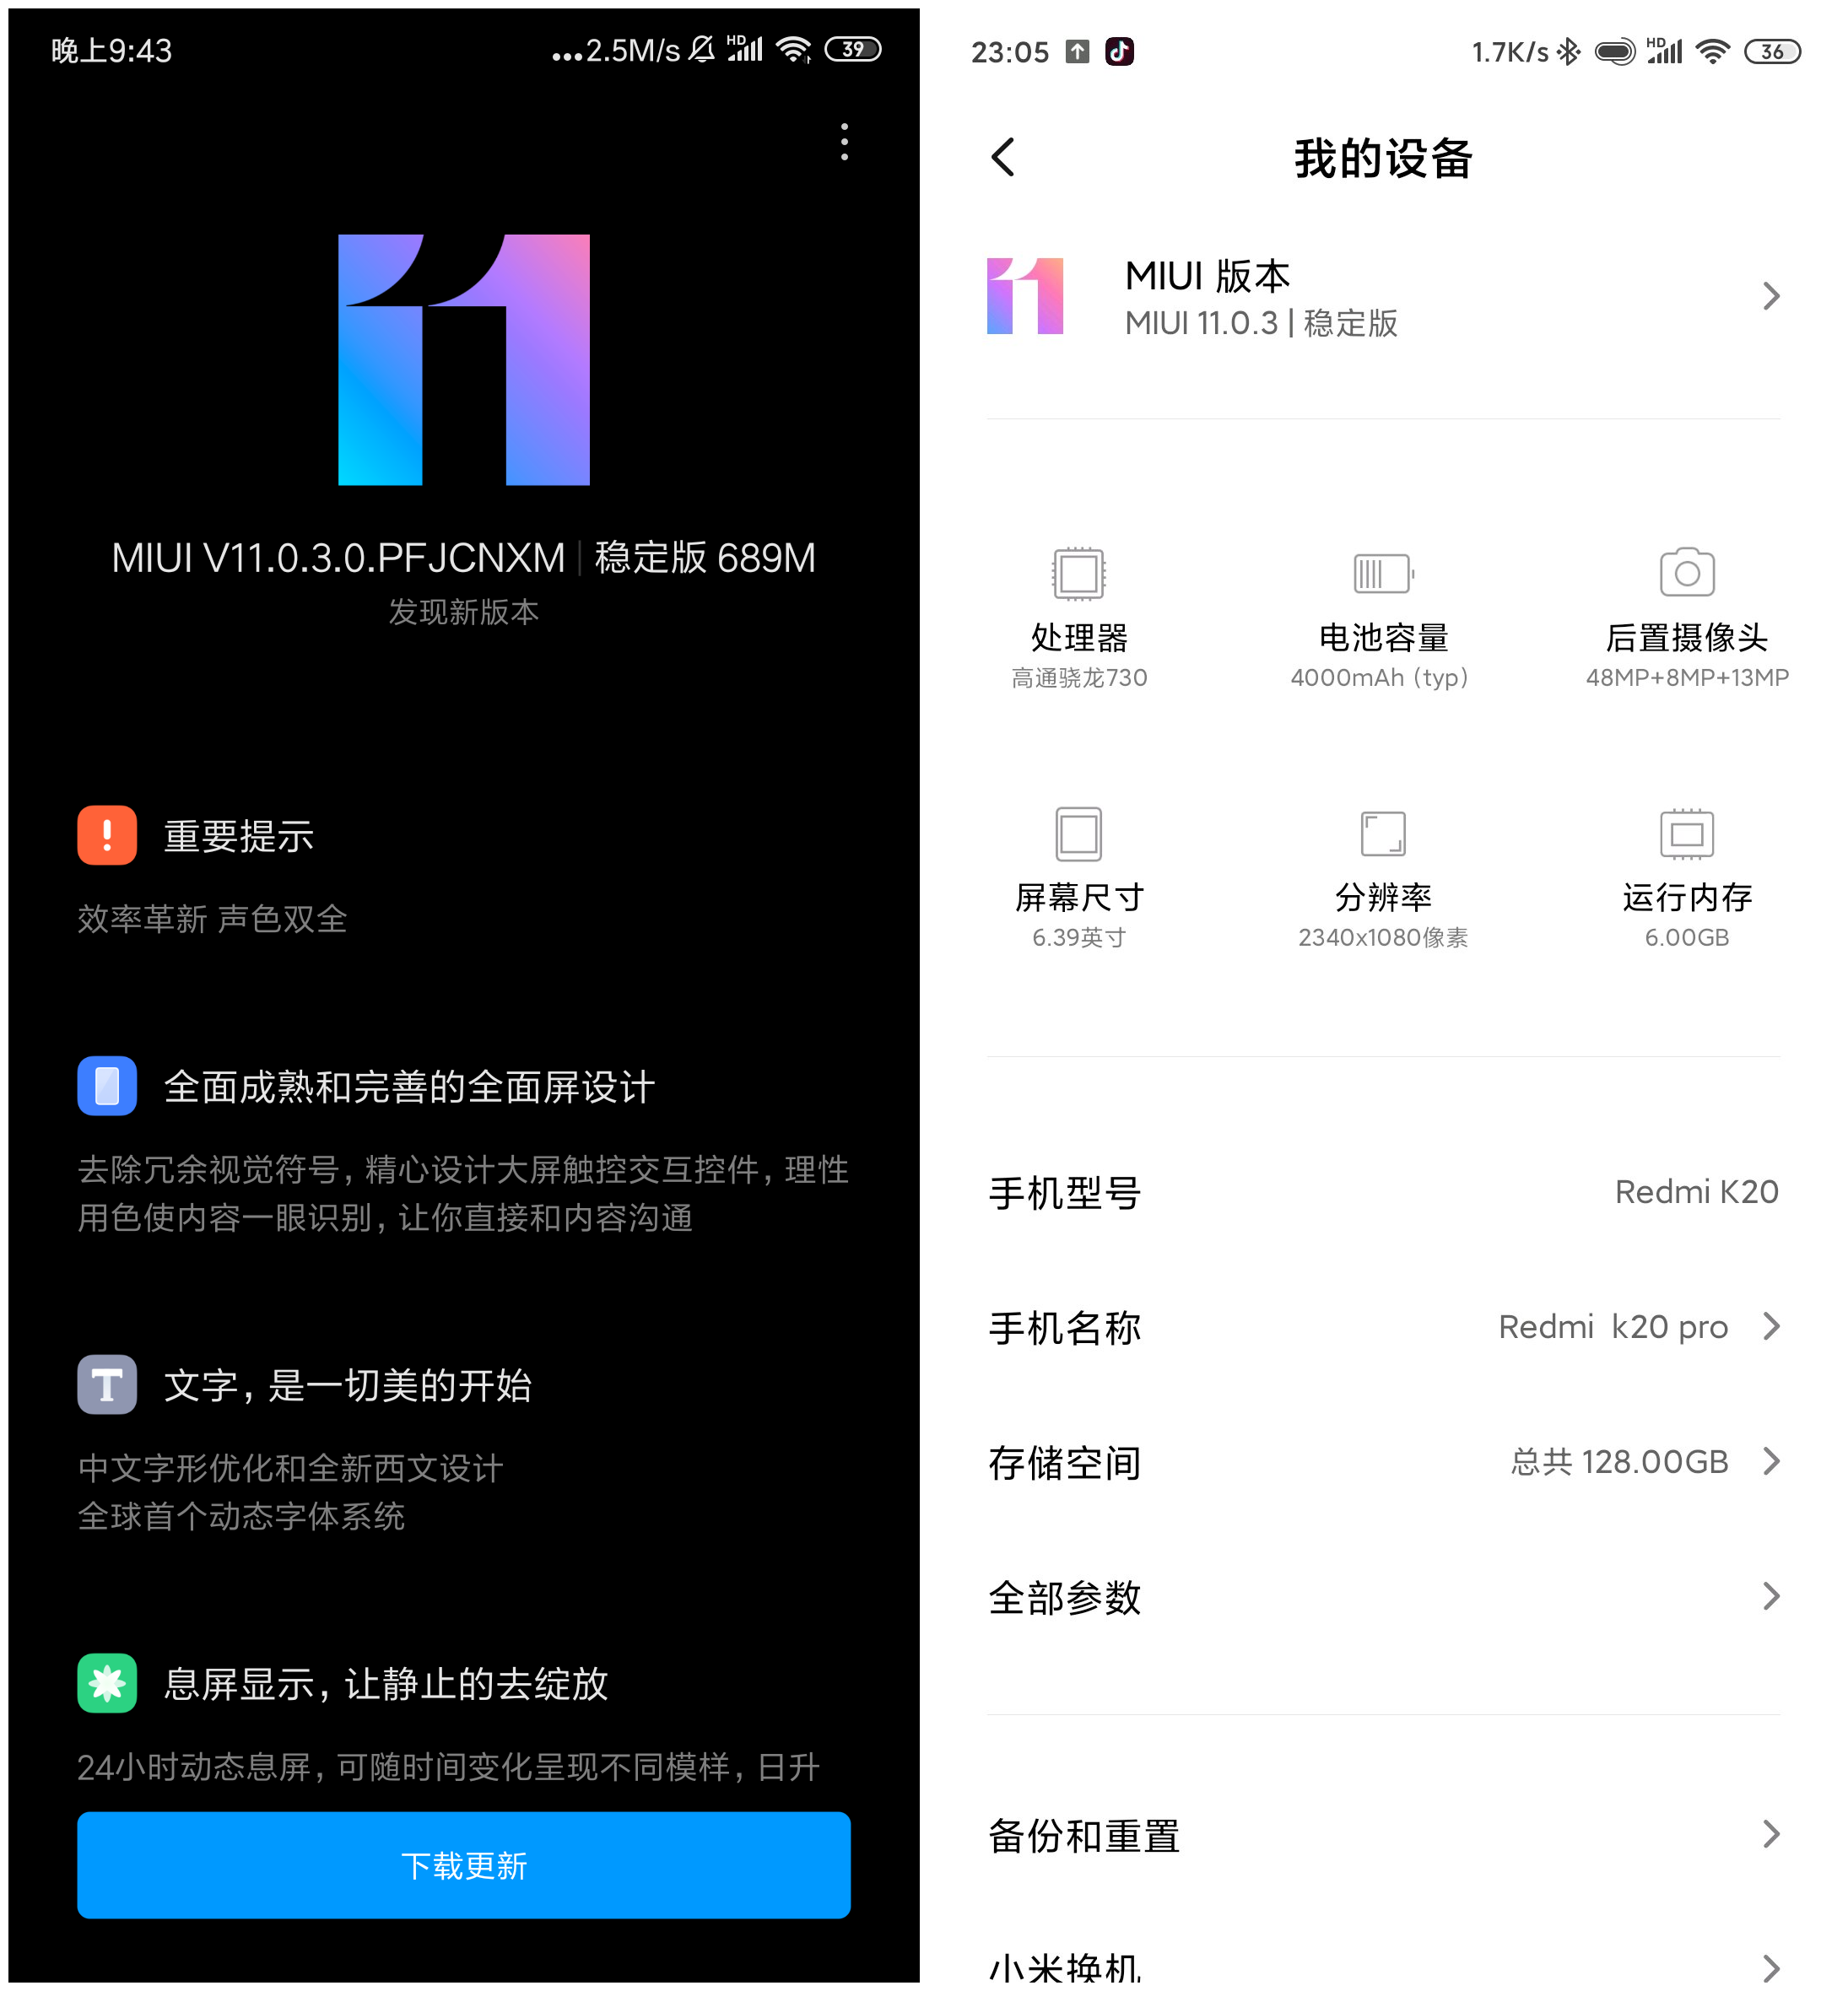 MIUI 11 for Redmi K20